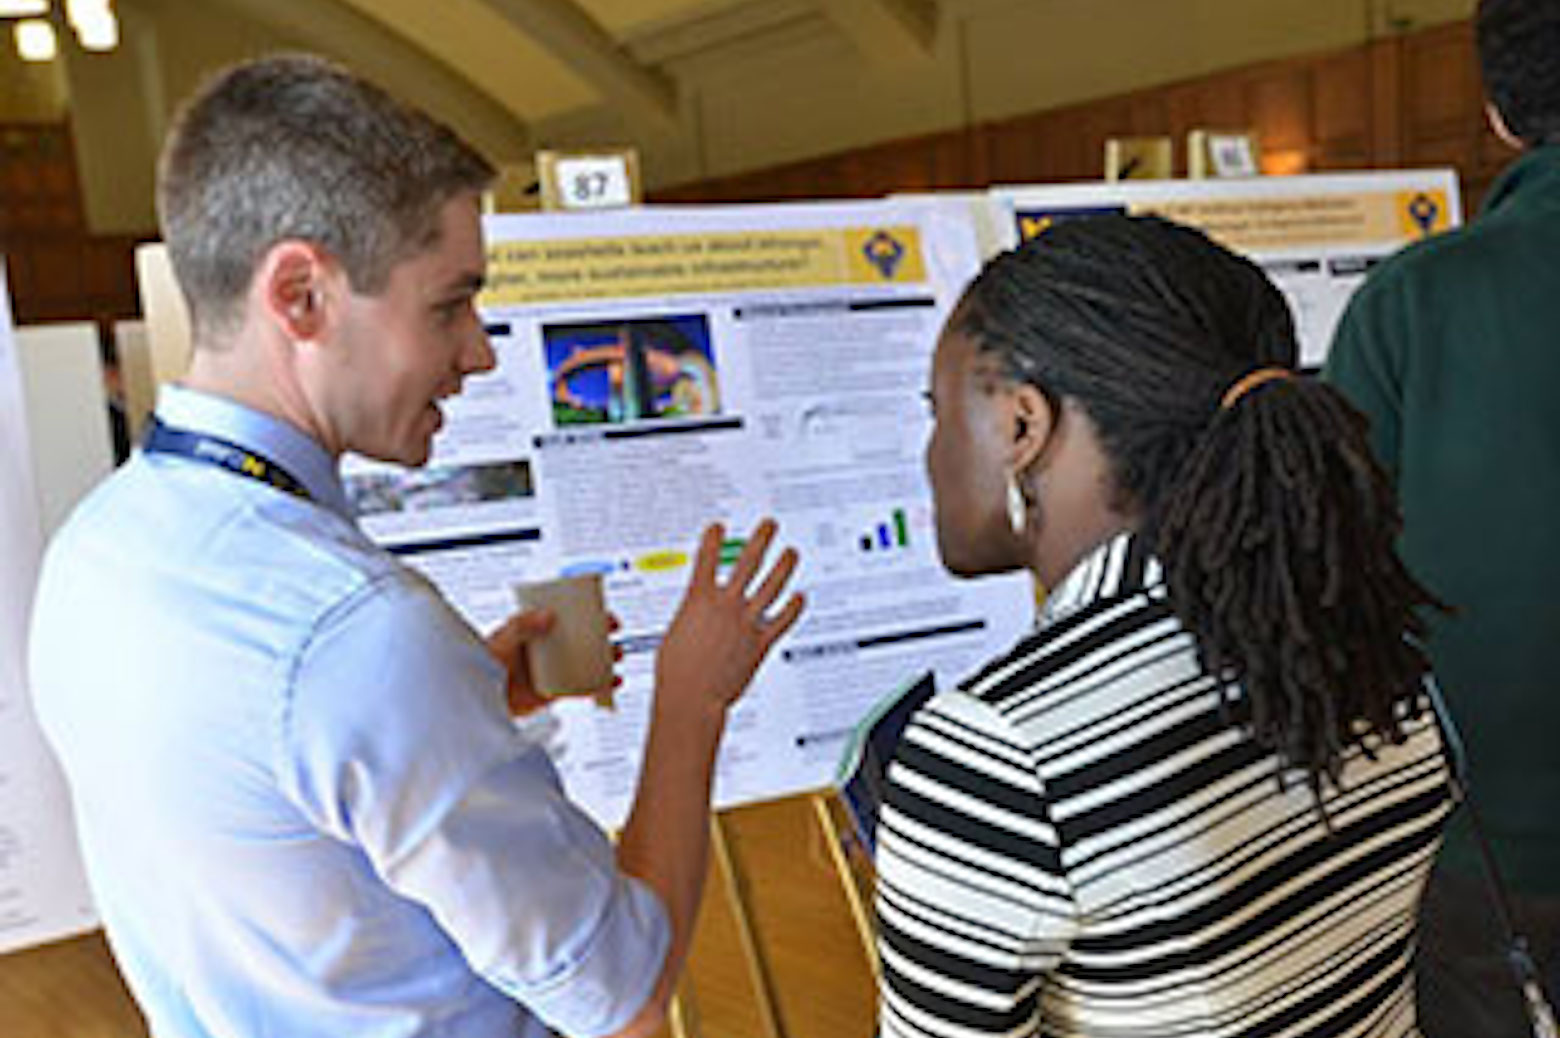 2 participants talk while looking at a poster proposal